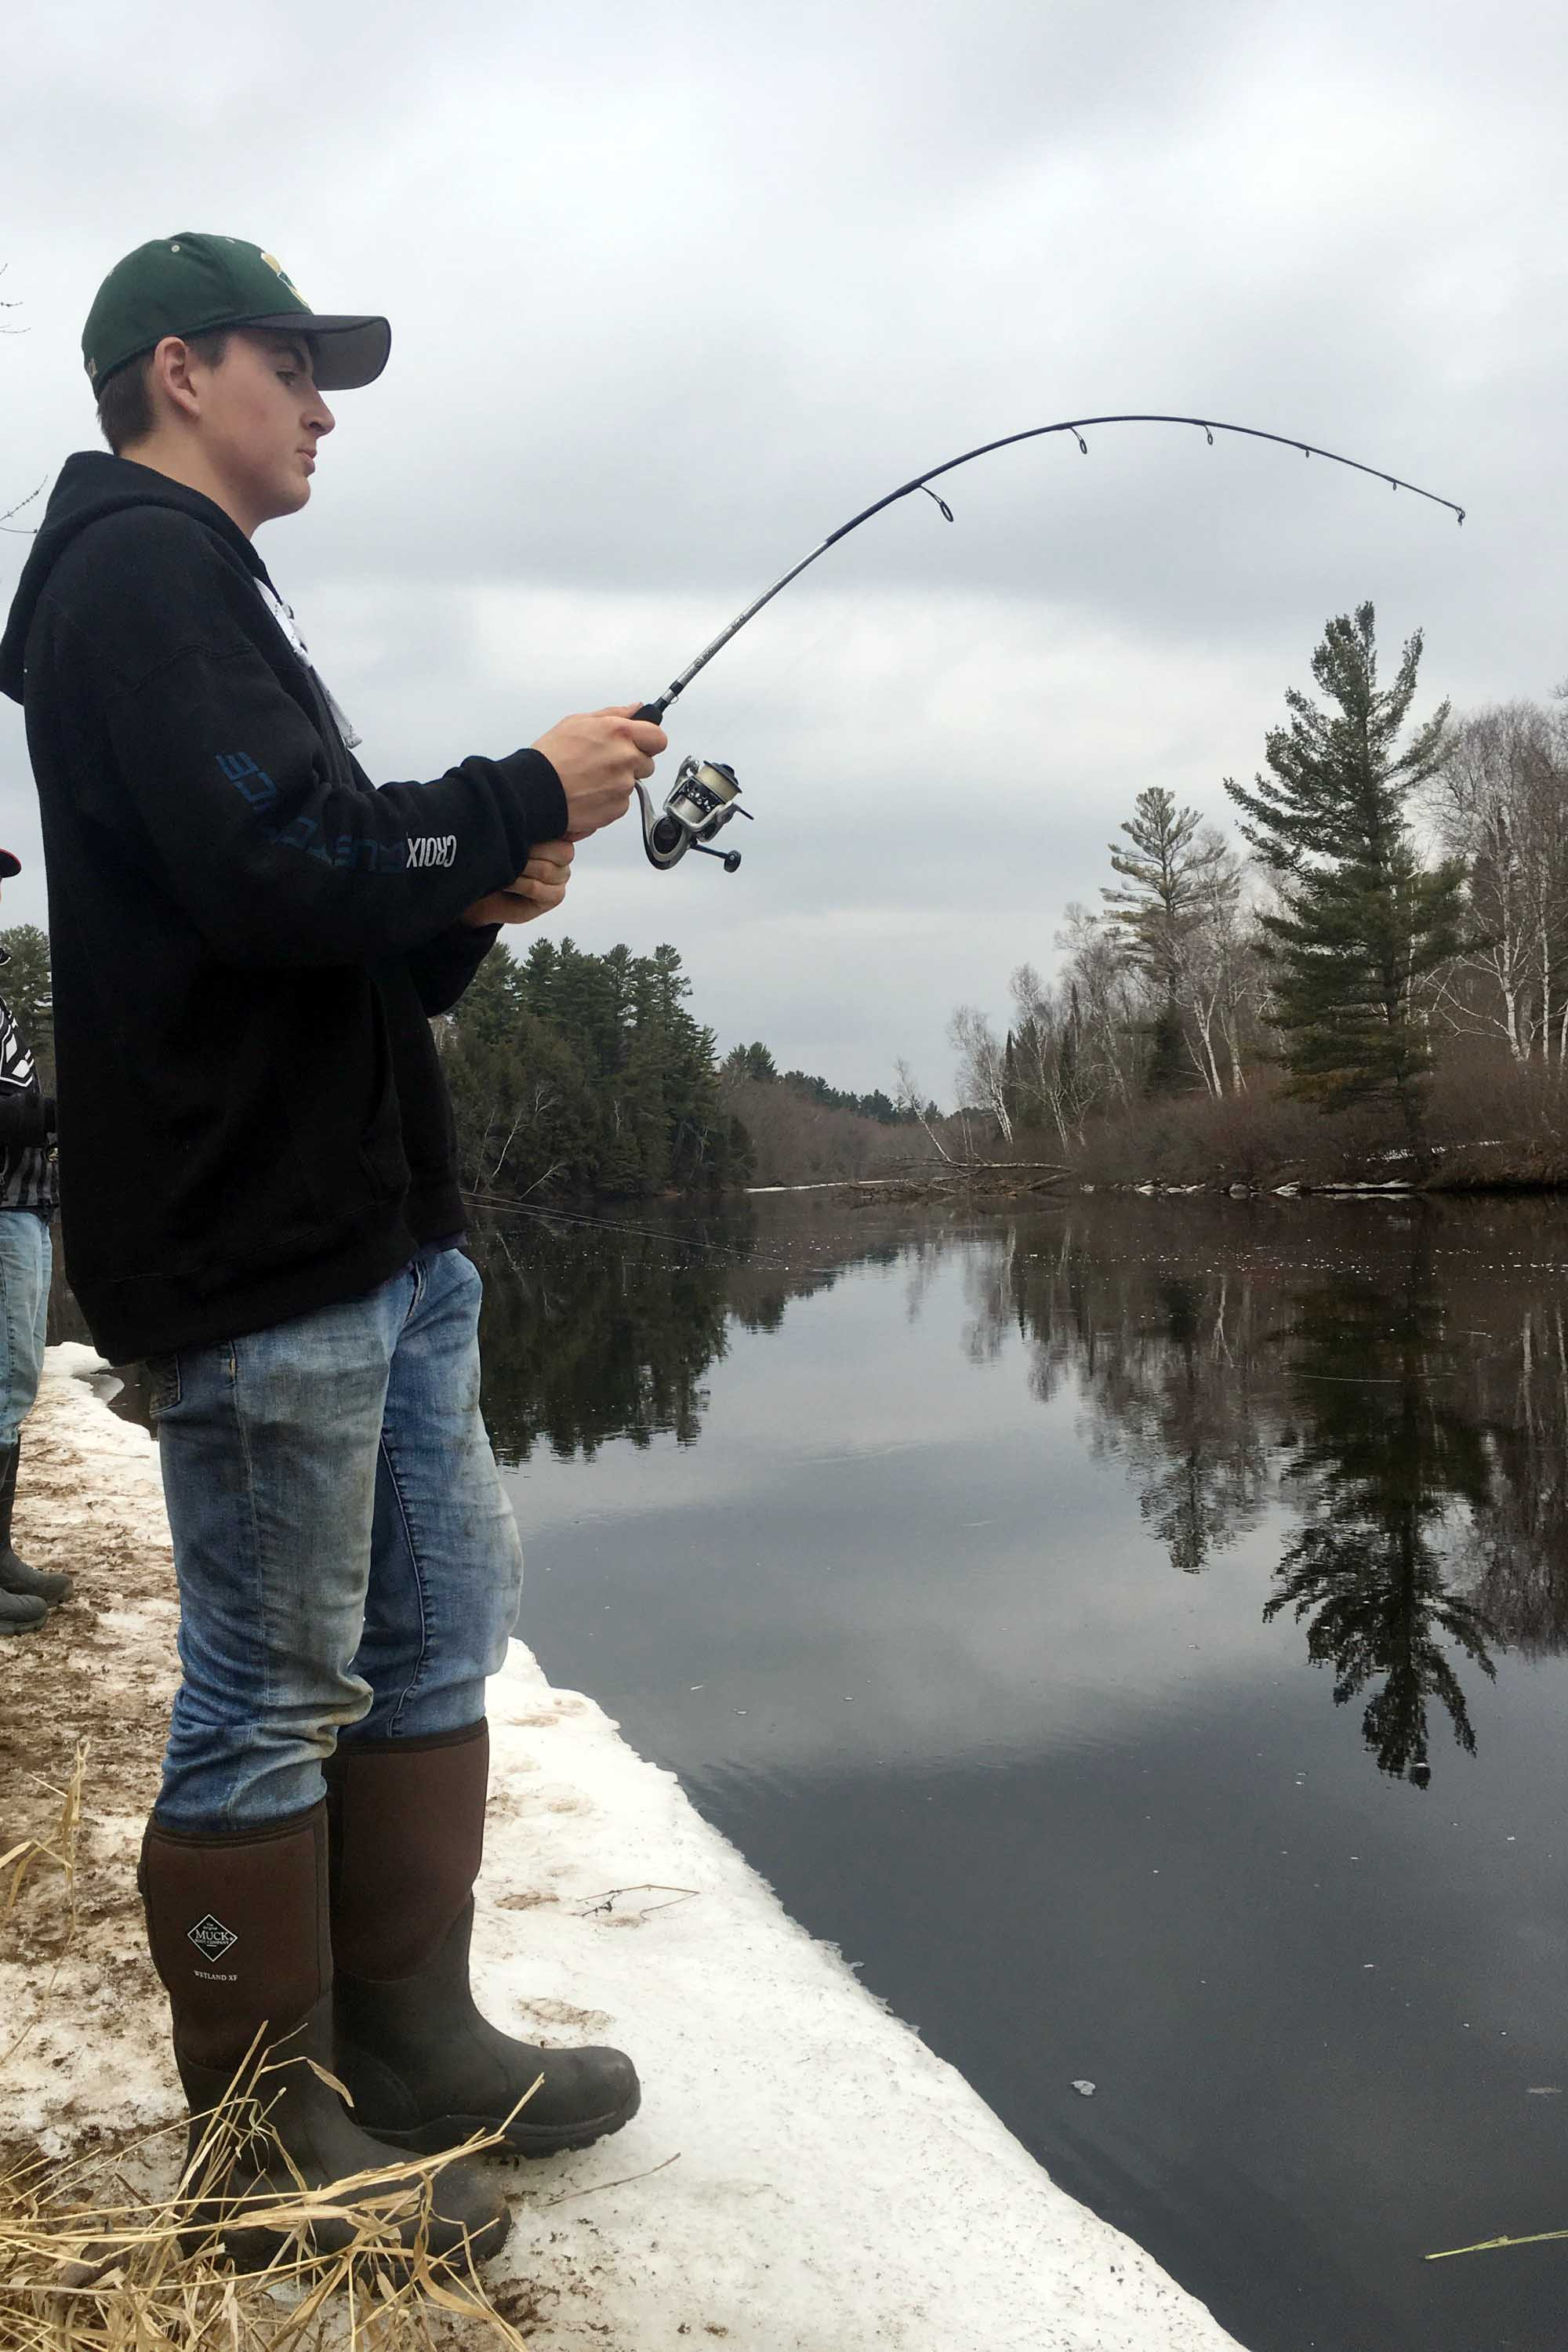 Stream Fishing with RG-42 Fishing Pole